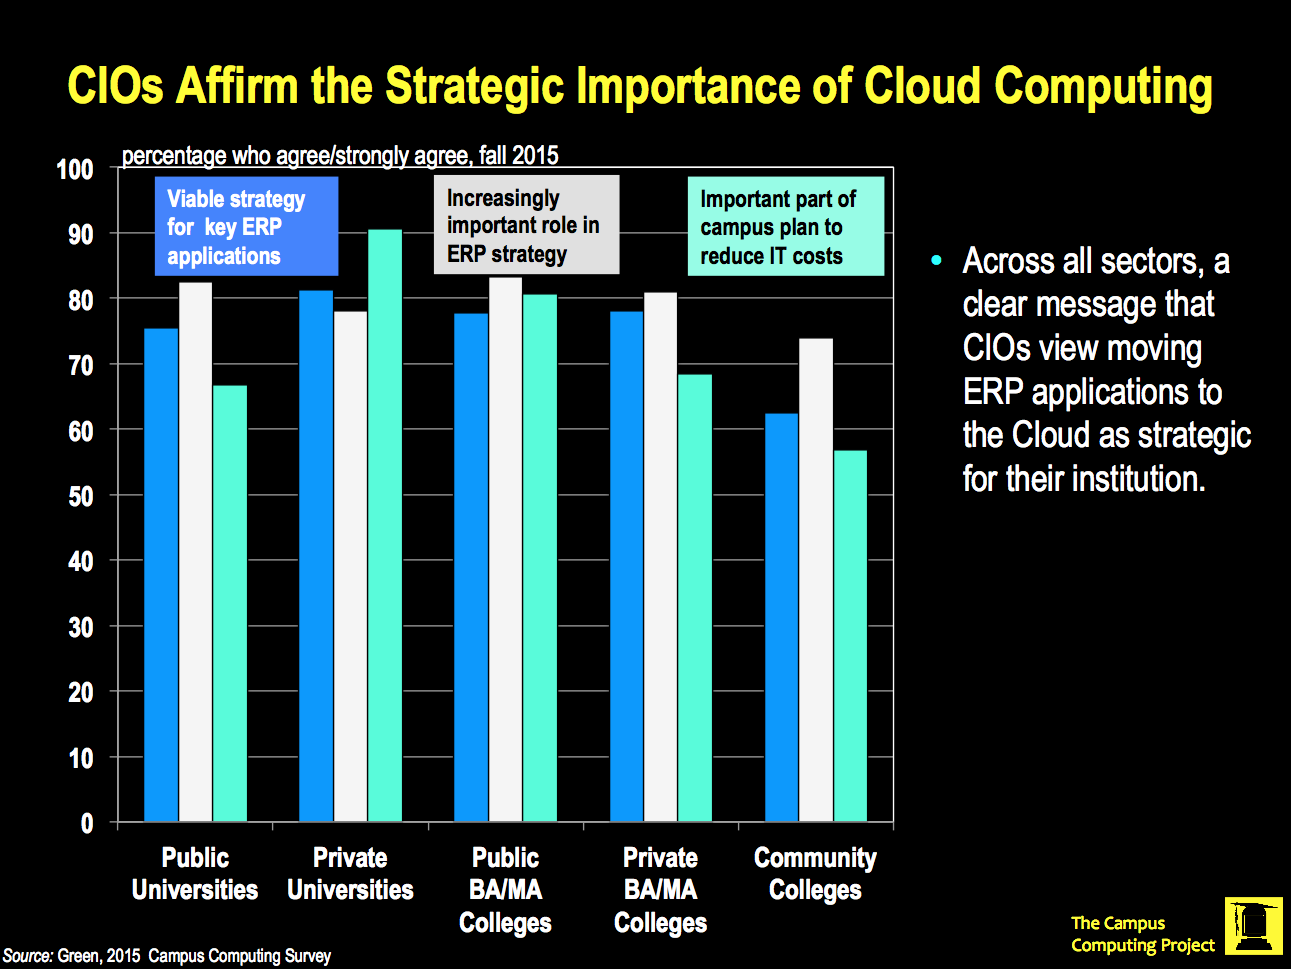 CIOs Affirm the Strategic Importance of Cloud Computing